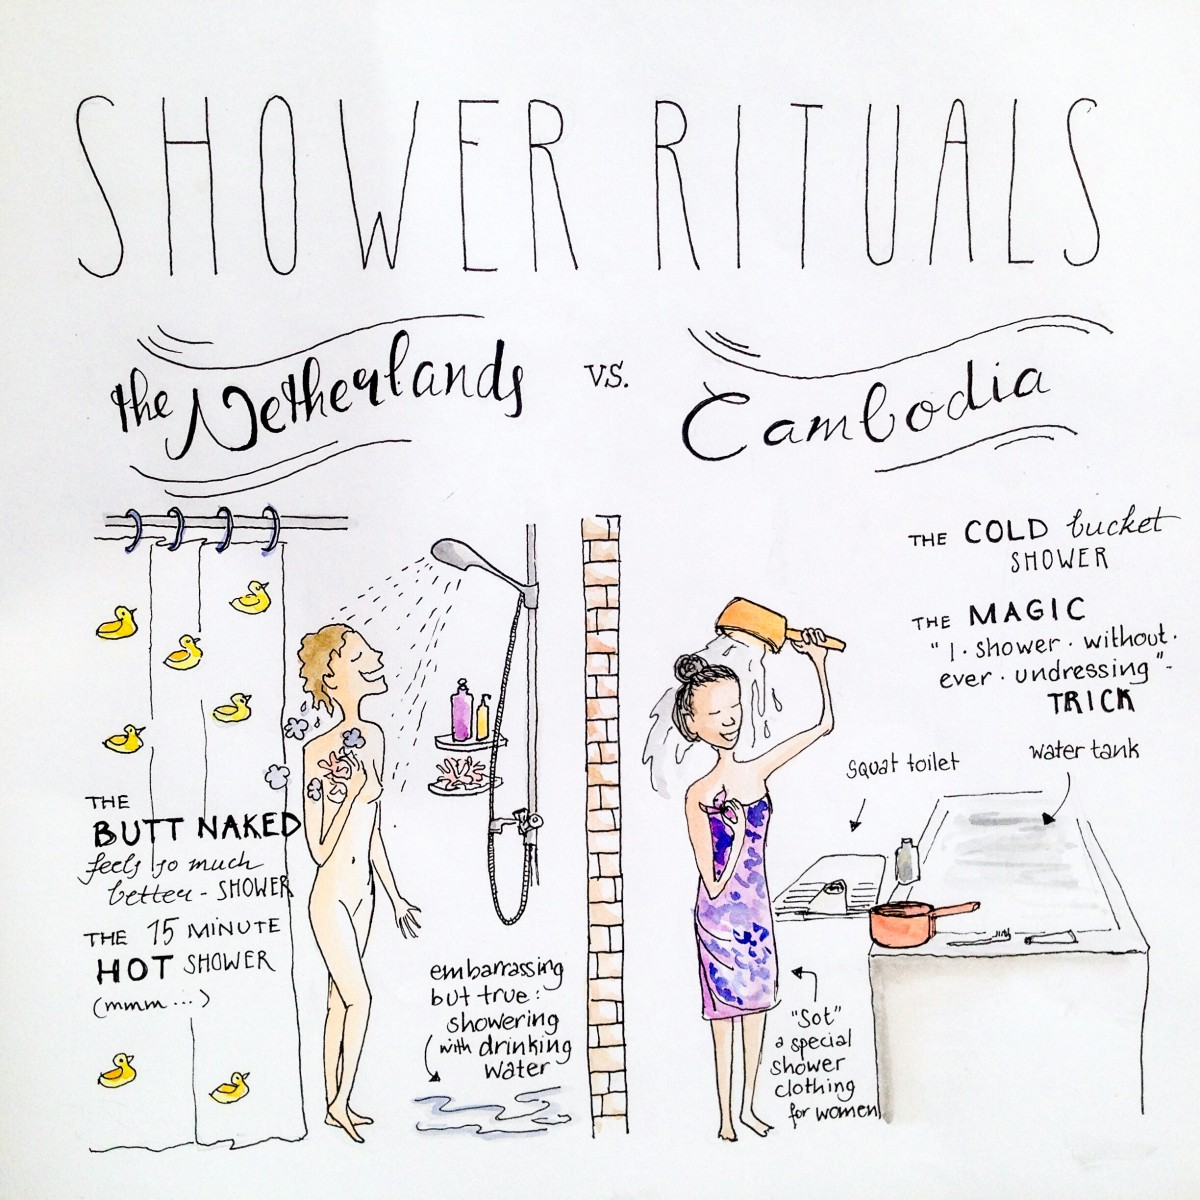 Shower rituals in Cambodia